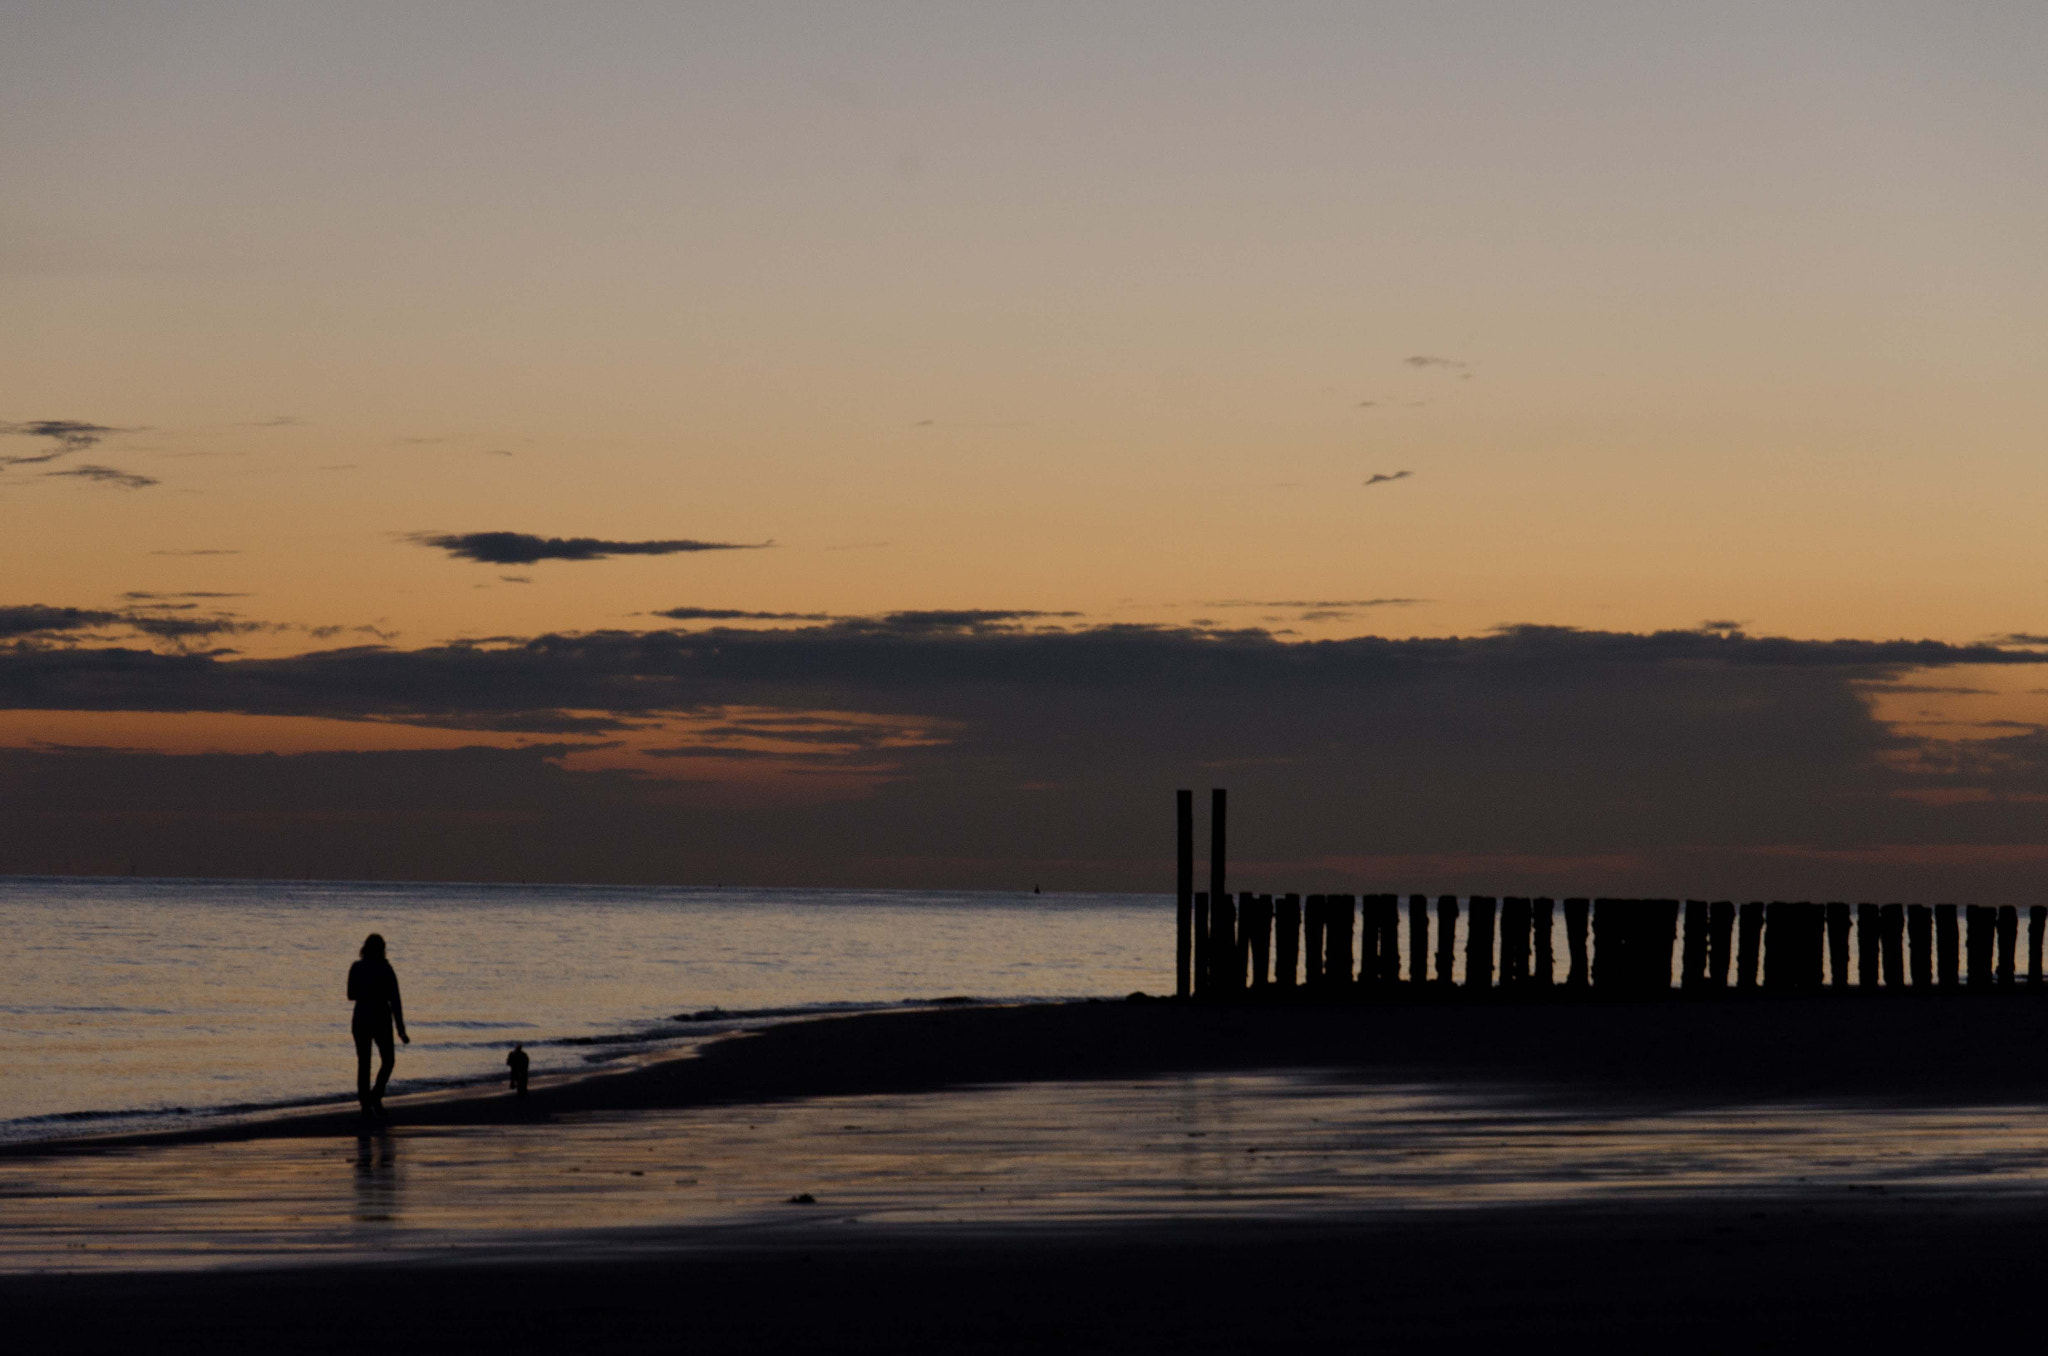 Photograph A Summer Sunset by Leonie Schoenmakers on 500px